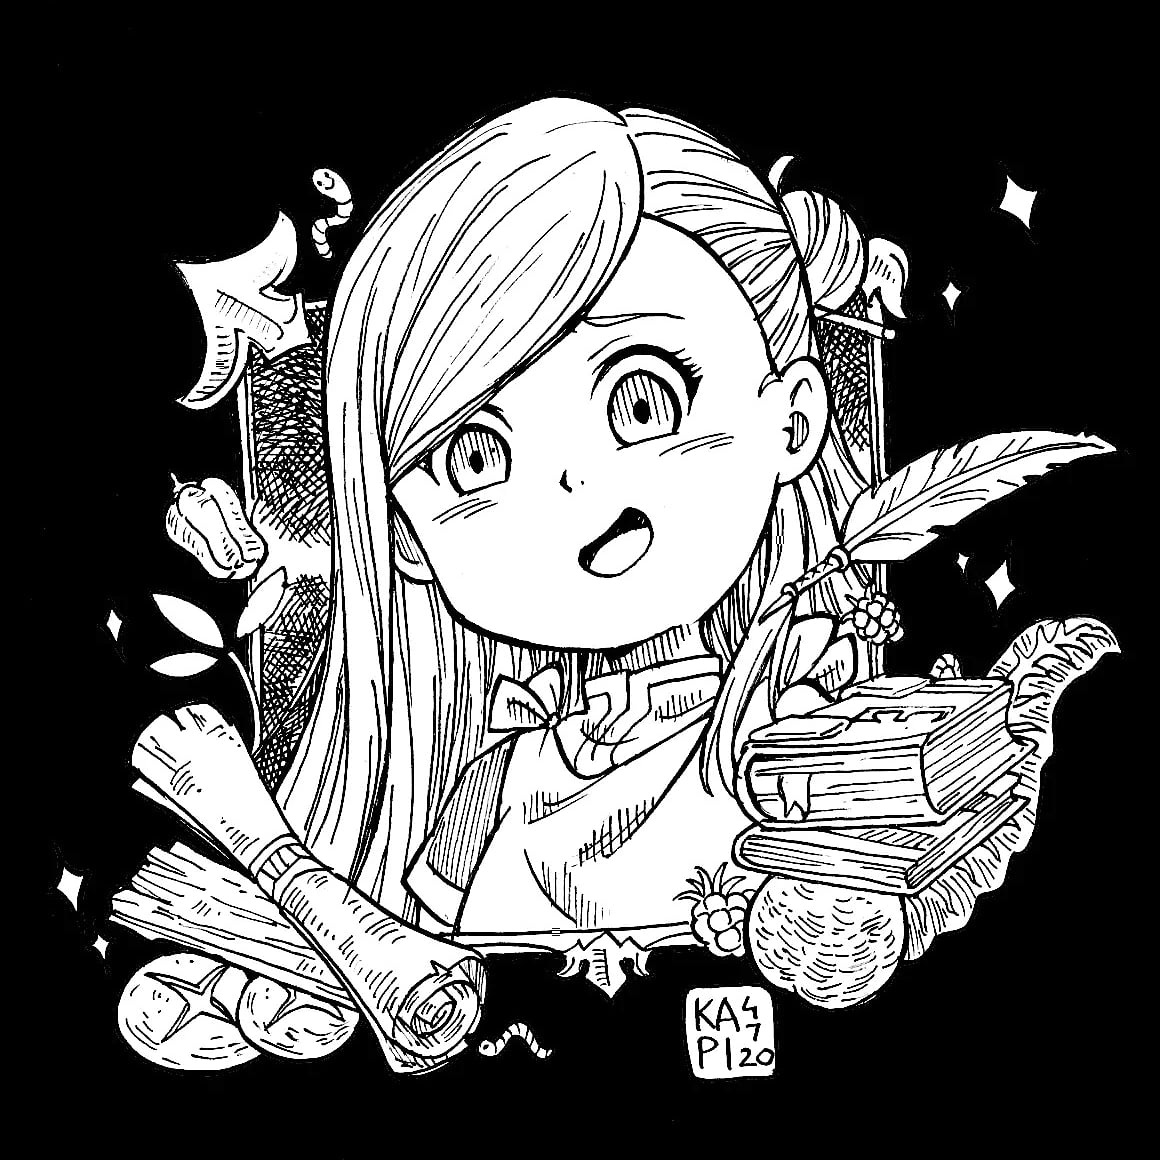 """""""If there's a way to make her cuter, it's wrong not to do it! Cuteness is justice!""""  Ascendence of a bookworm is a warm isekai style anime that lugs ur heart and at the same time warms it!! Season2 is out so give it a try!! #Mangapic.twitter.com/XVVtq5rIG3"""